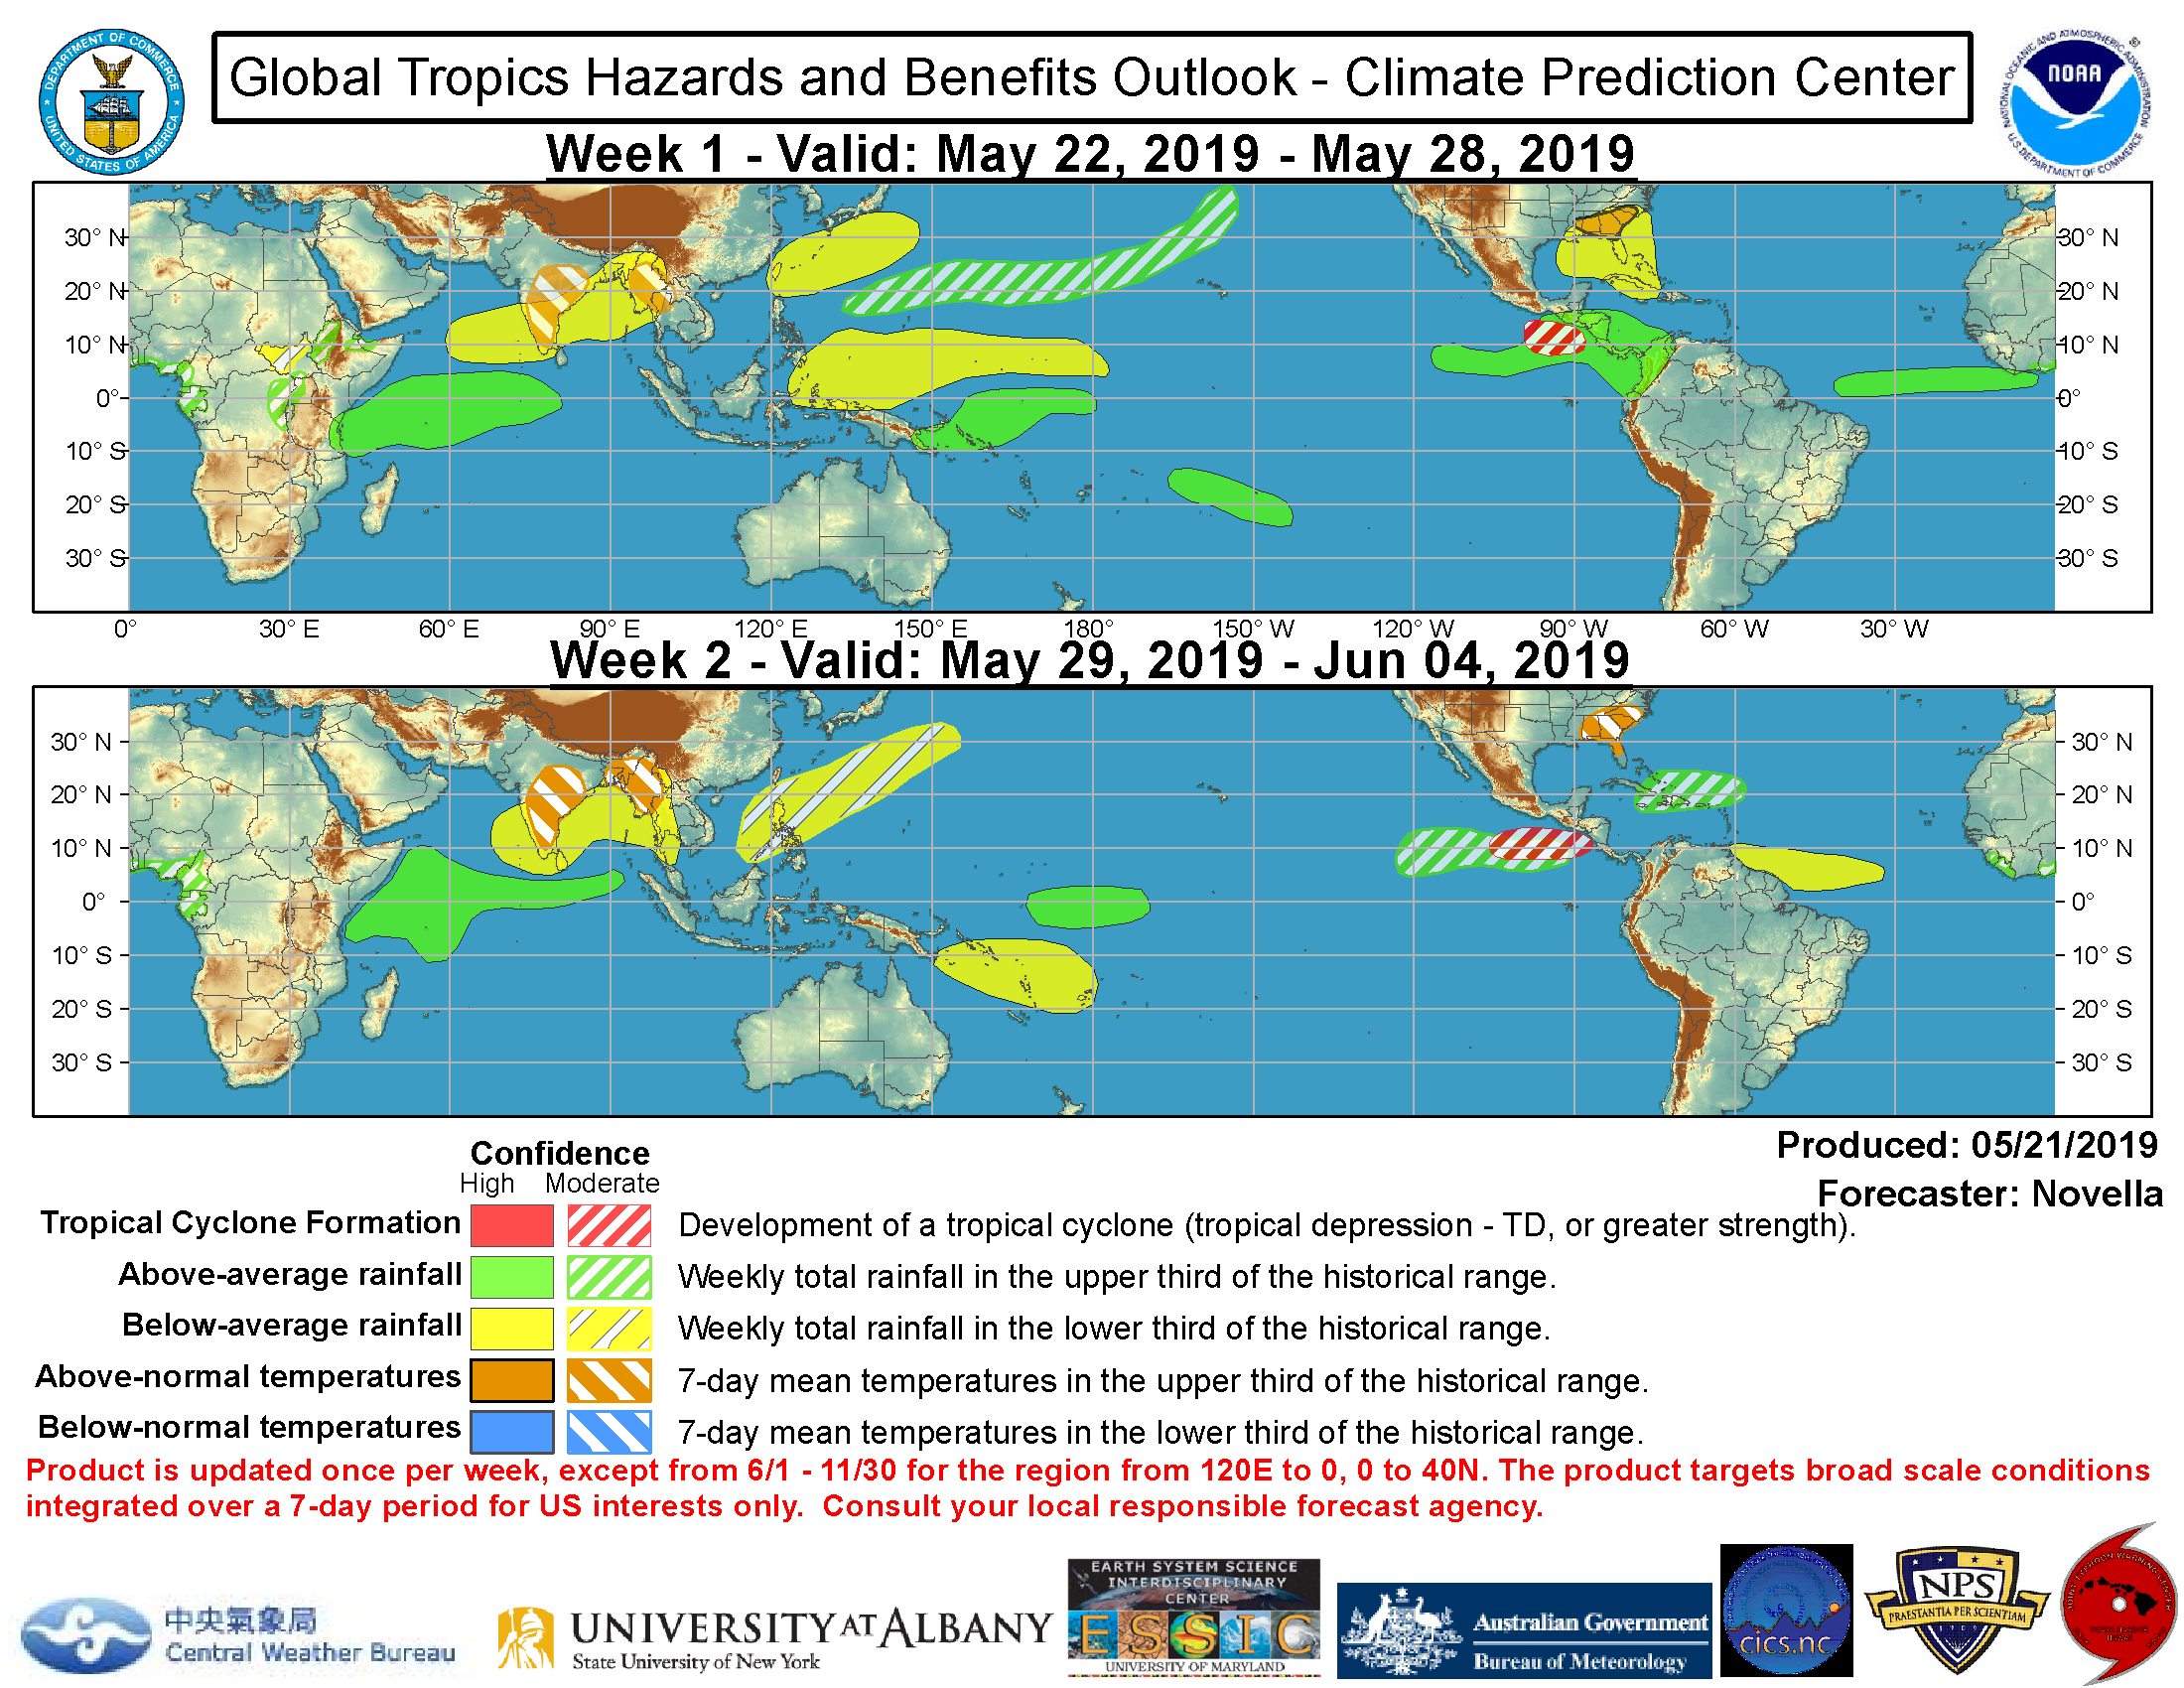 20190522: tropical cyclone formation possible across the Eastern North Pacific next 2 weeks. Likely calm elsewhere